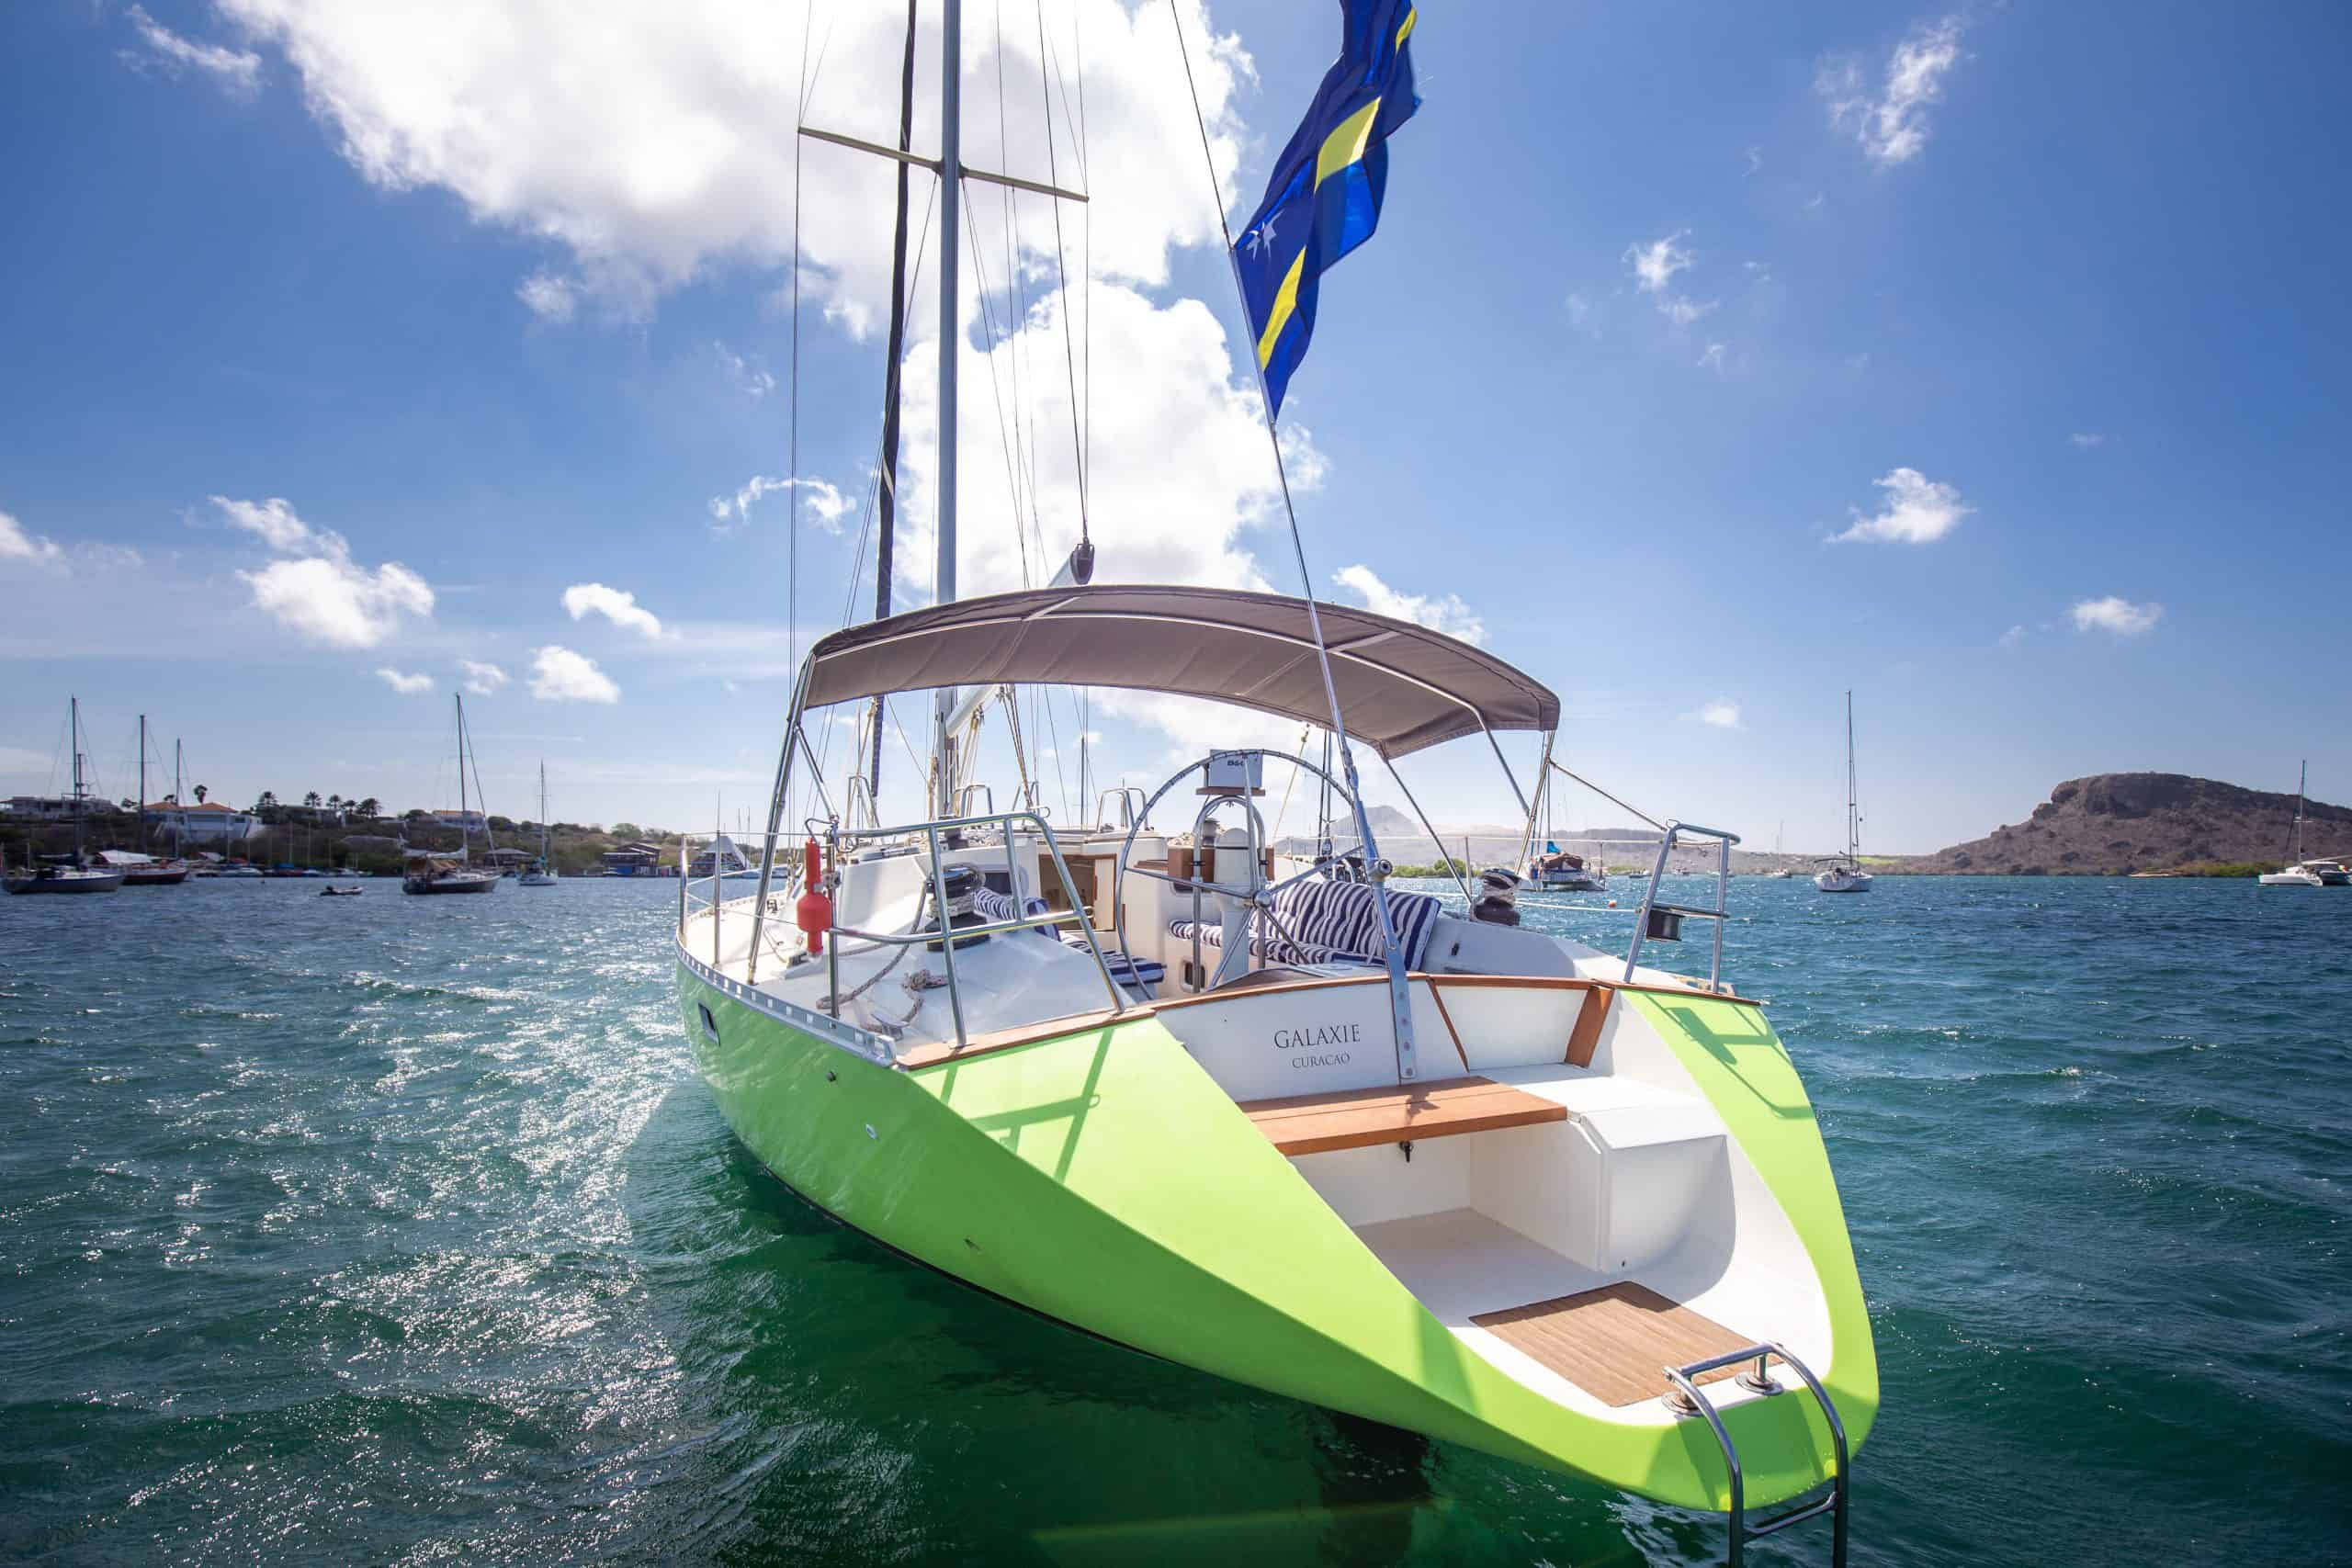 Maxie Sailing Curacao 2020 - private charter curacao boat tours